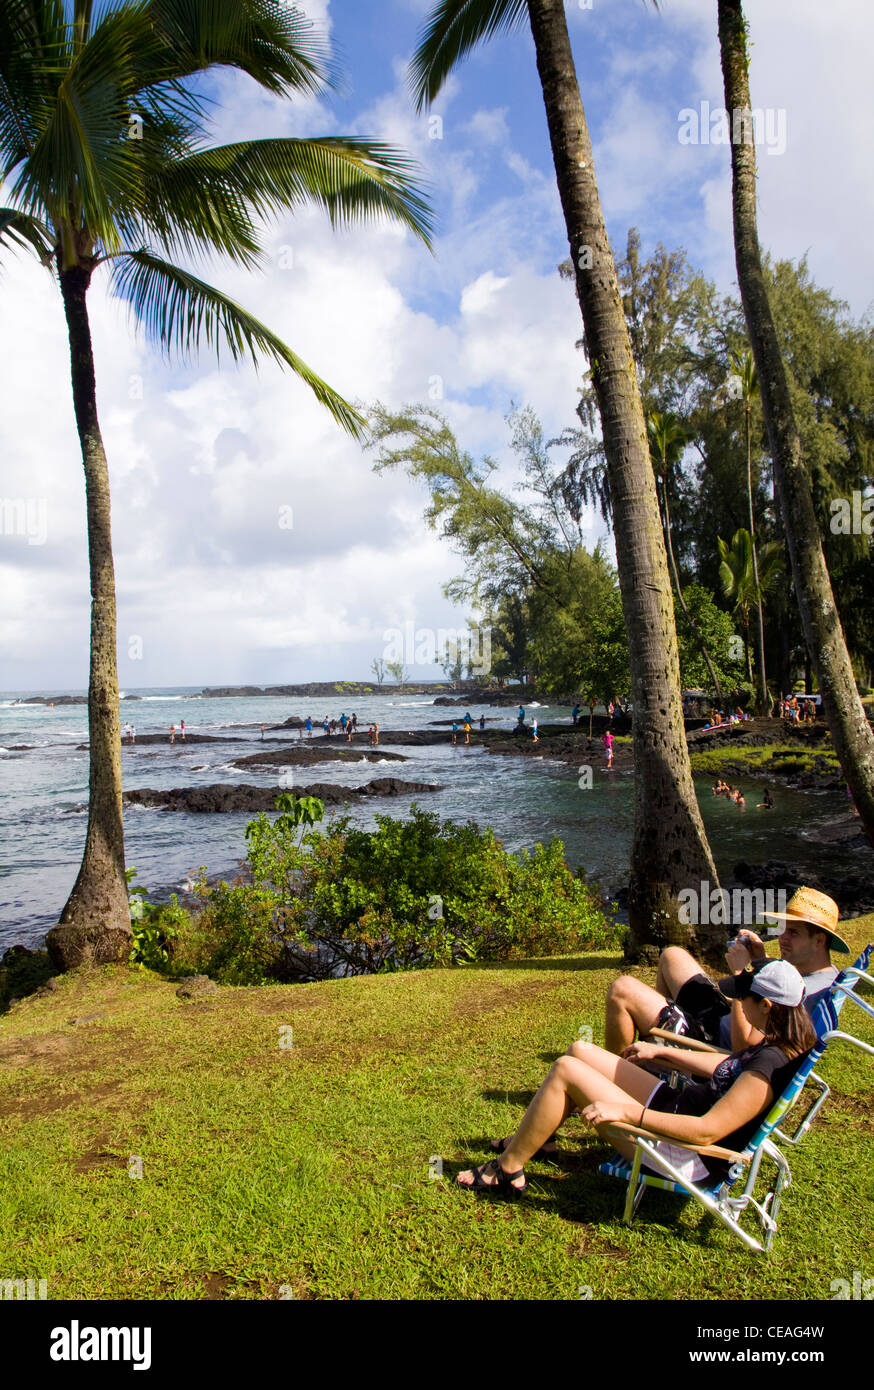 Fronting Hilo Bay, Onekahakaha Beach Park is popular with surfers, swimmers and sunbathers, Hilo, Big Island, Hawaii - Stock Image